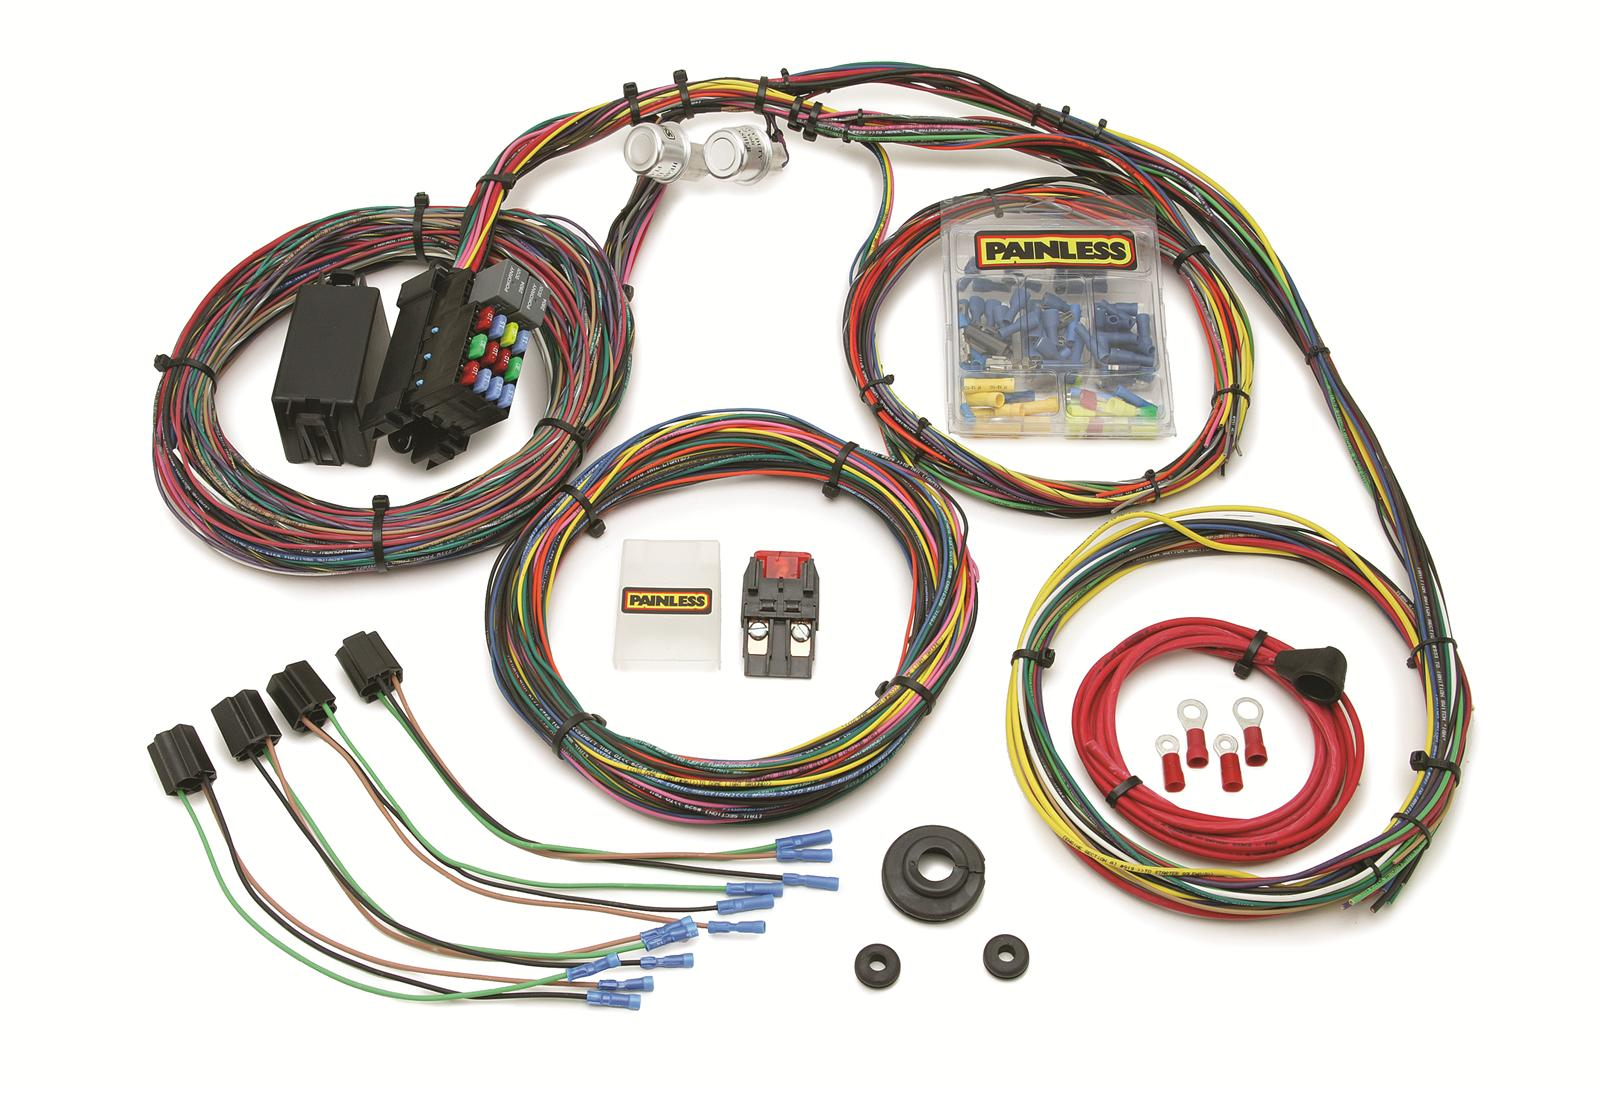 painless performance 21 circuit mopar color coded universal wiring rh summitracing com Race Car Wiring Diagram Chevy Painless Wiring Diagram Chevy